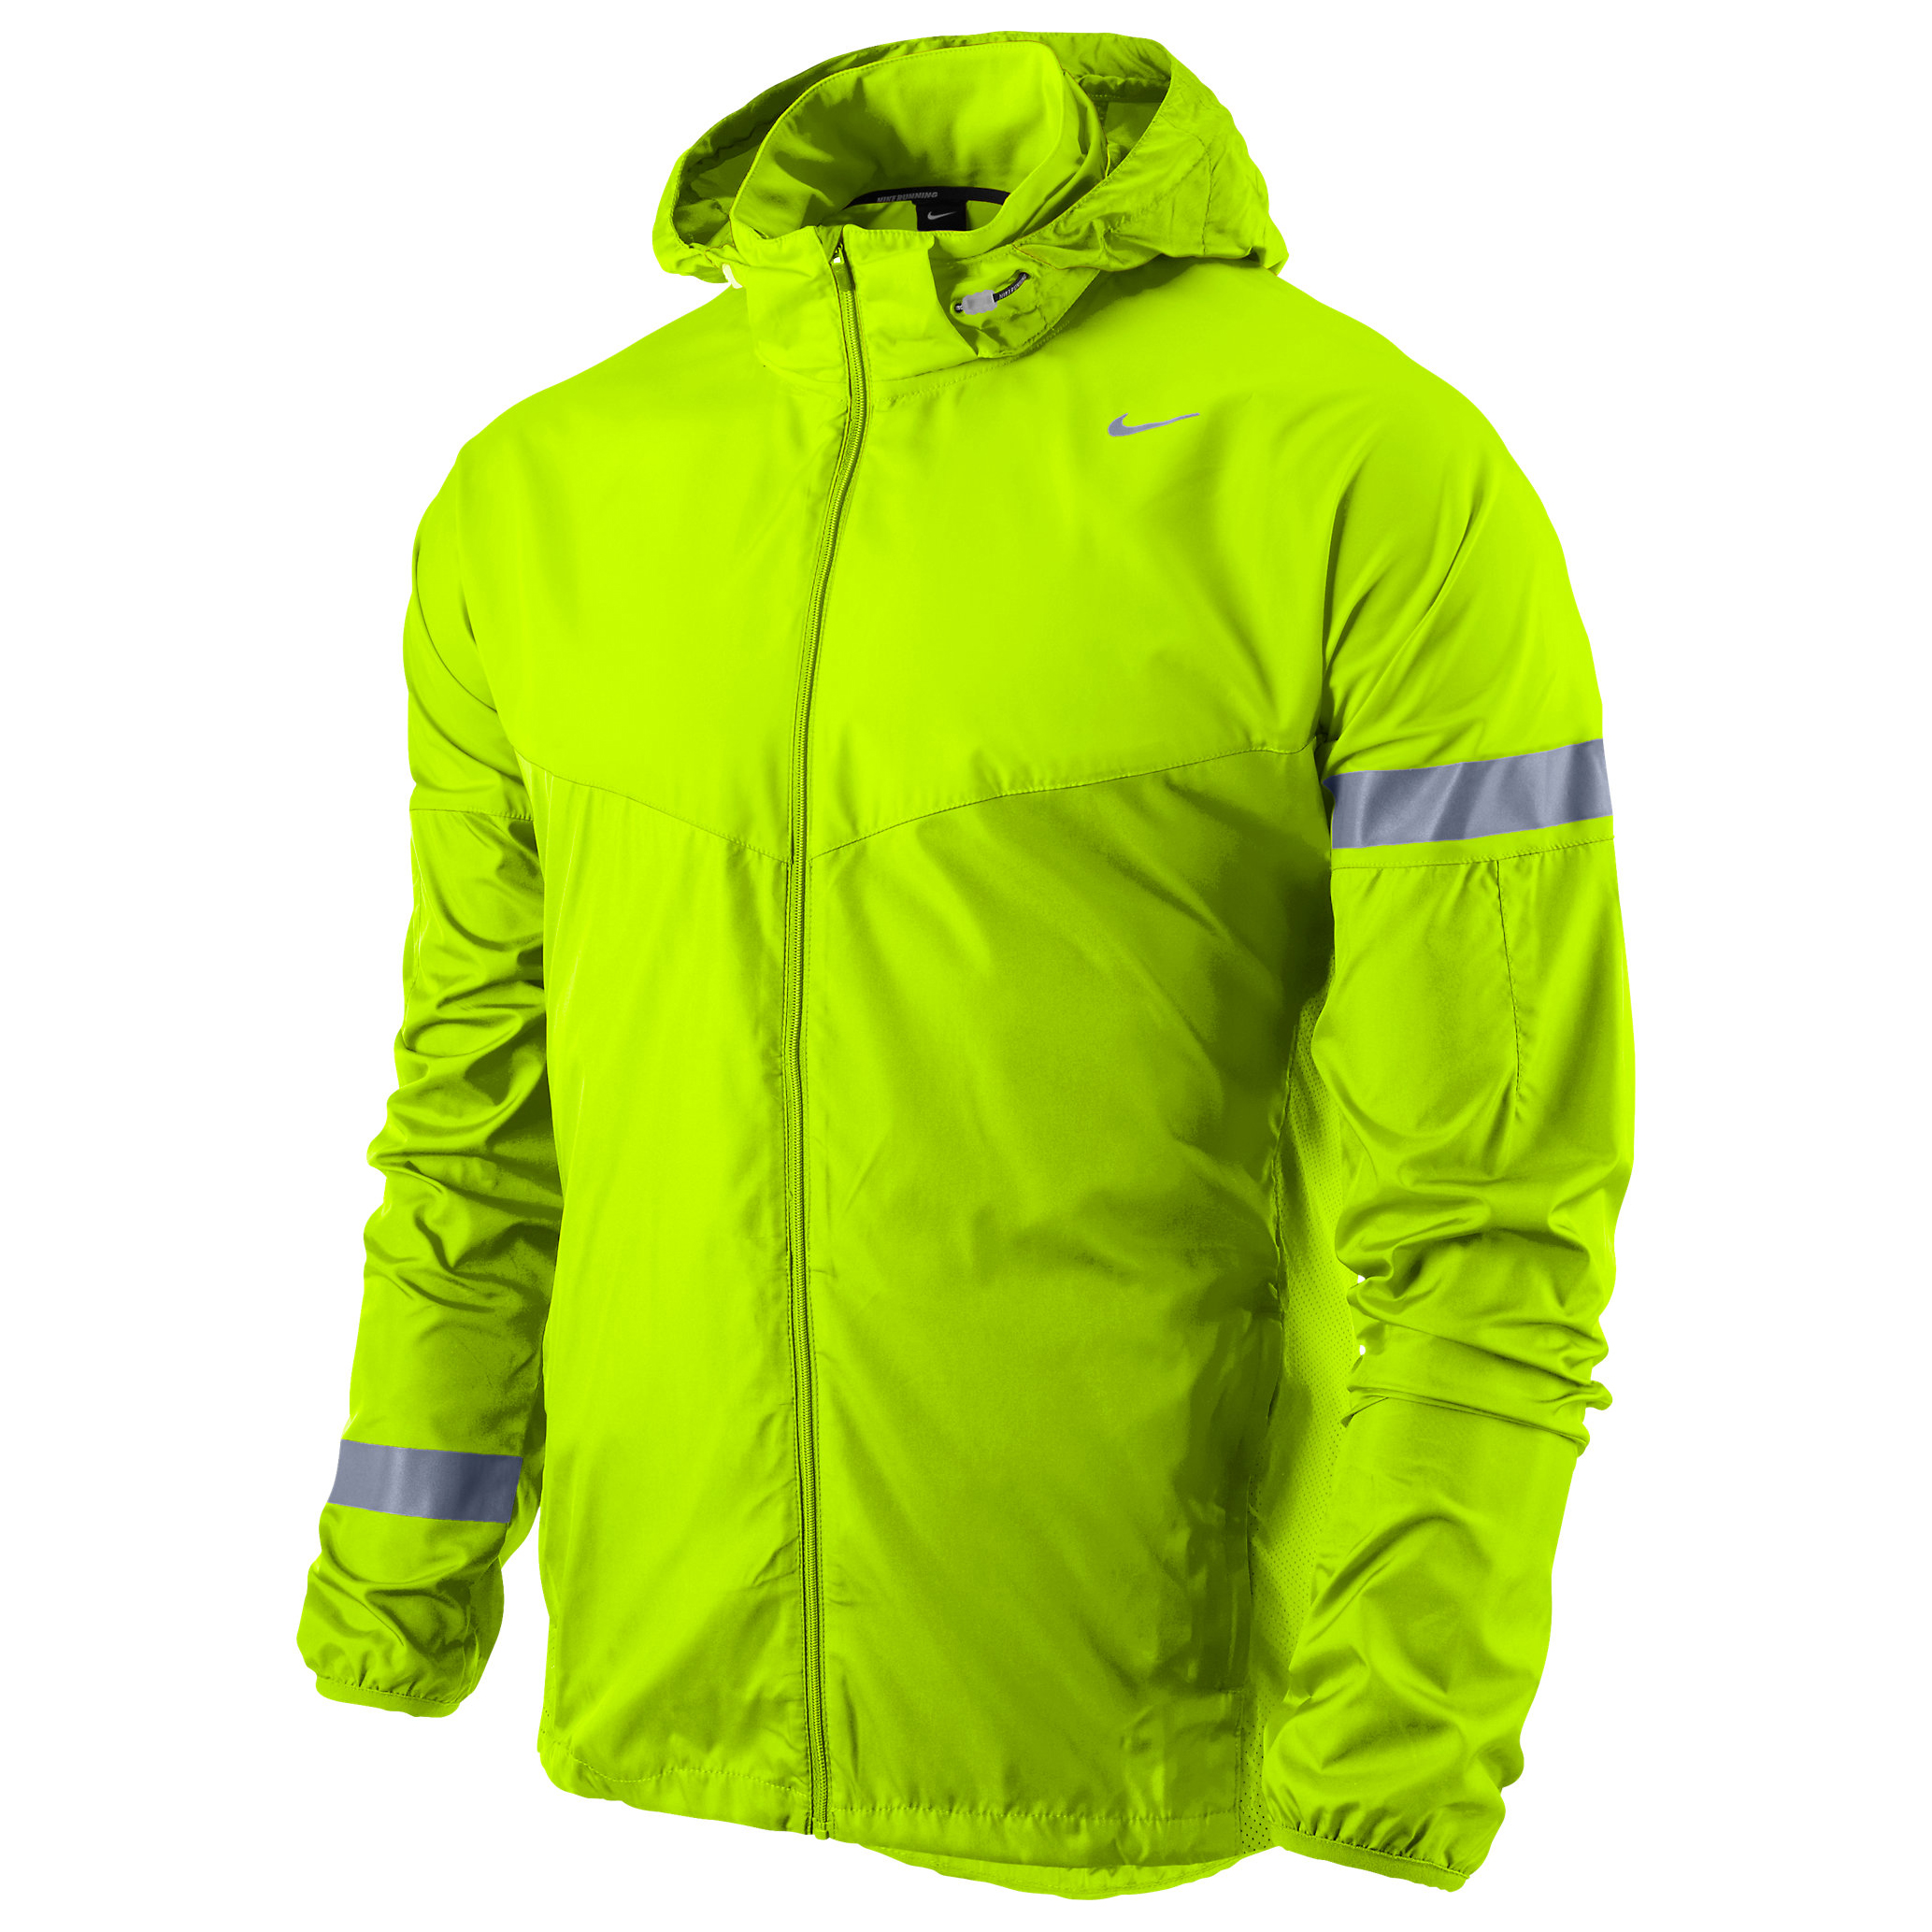 Nike Vapor Flash Jacket Yellow